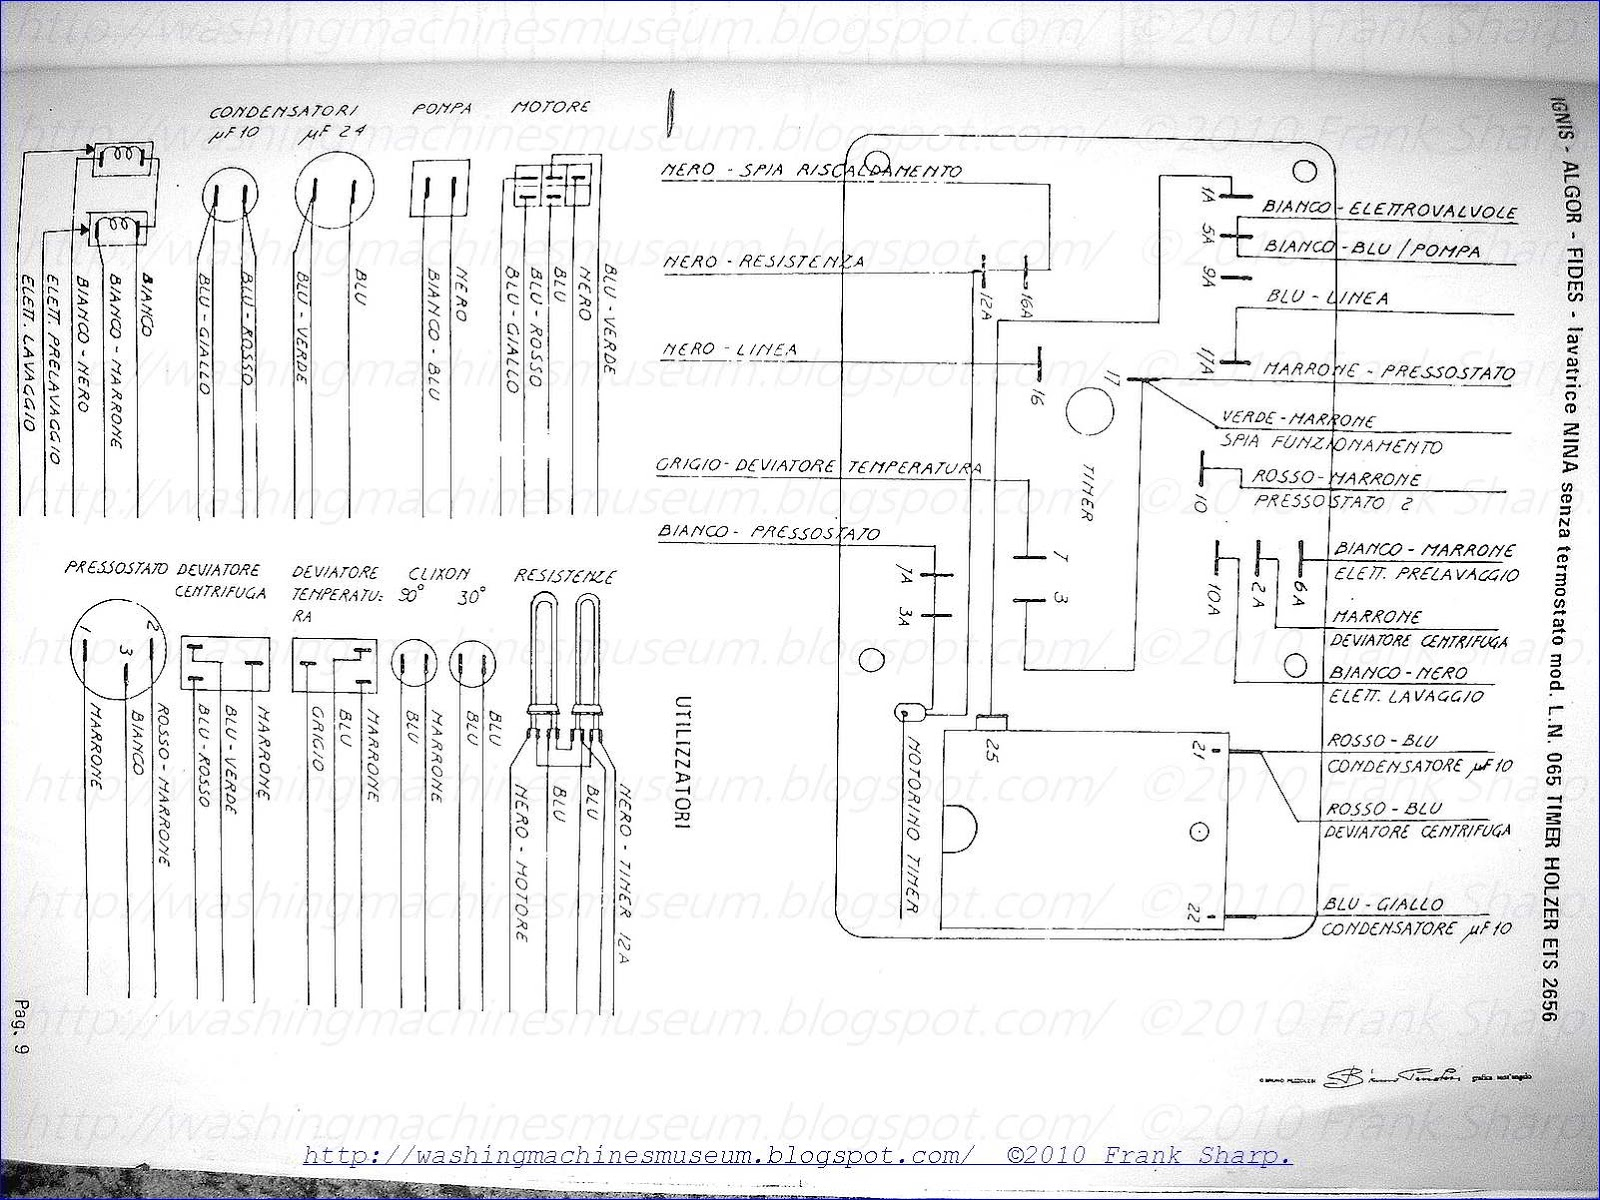 washer rama museum   ignis mod  nina l n  065 timer holzer ets2656 schematic diagram